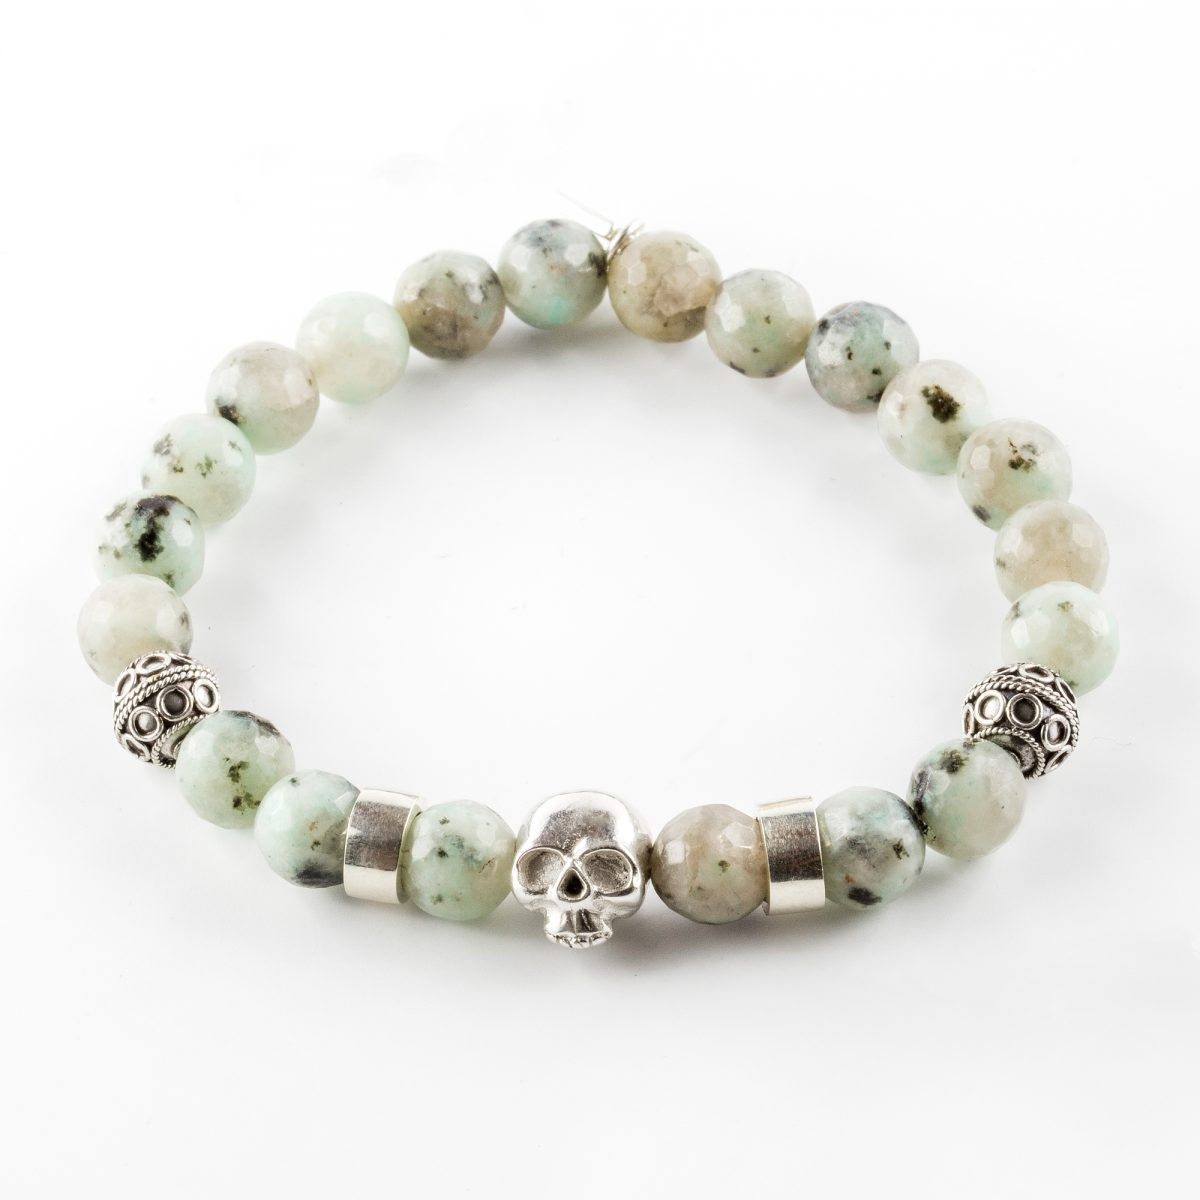 Silver and amazonite bracelet with skull